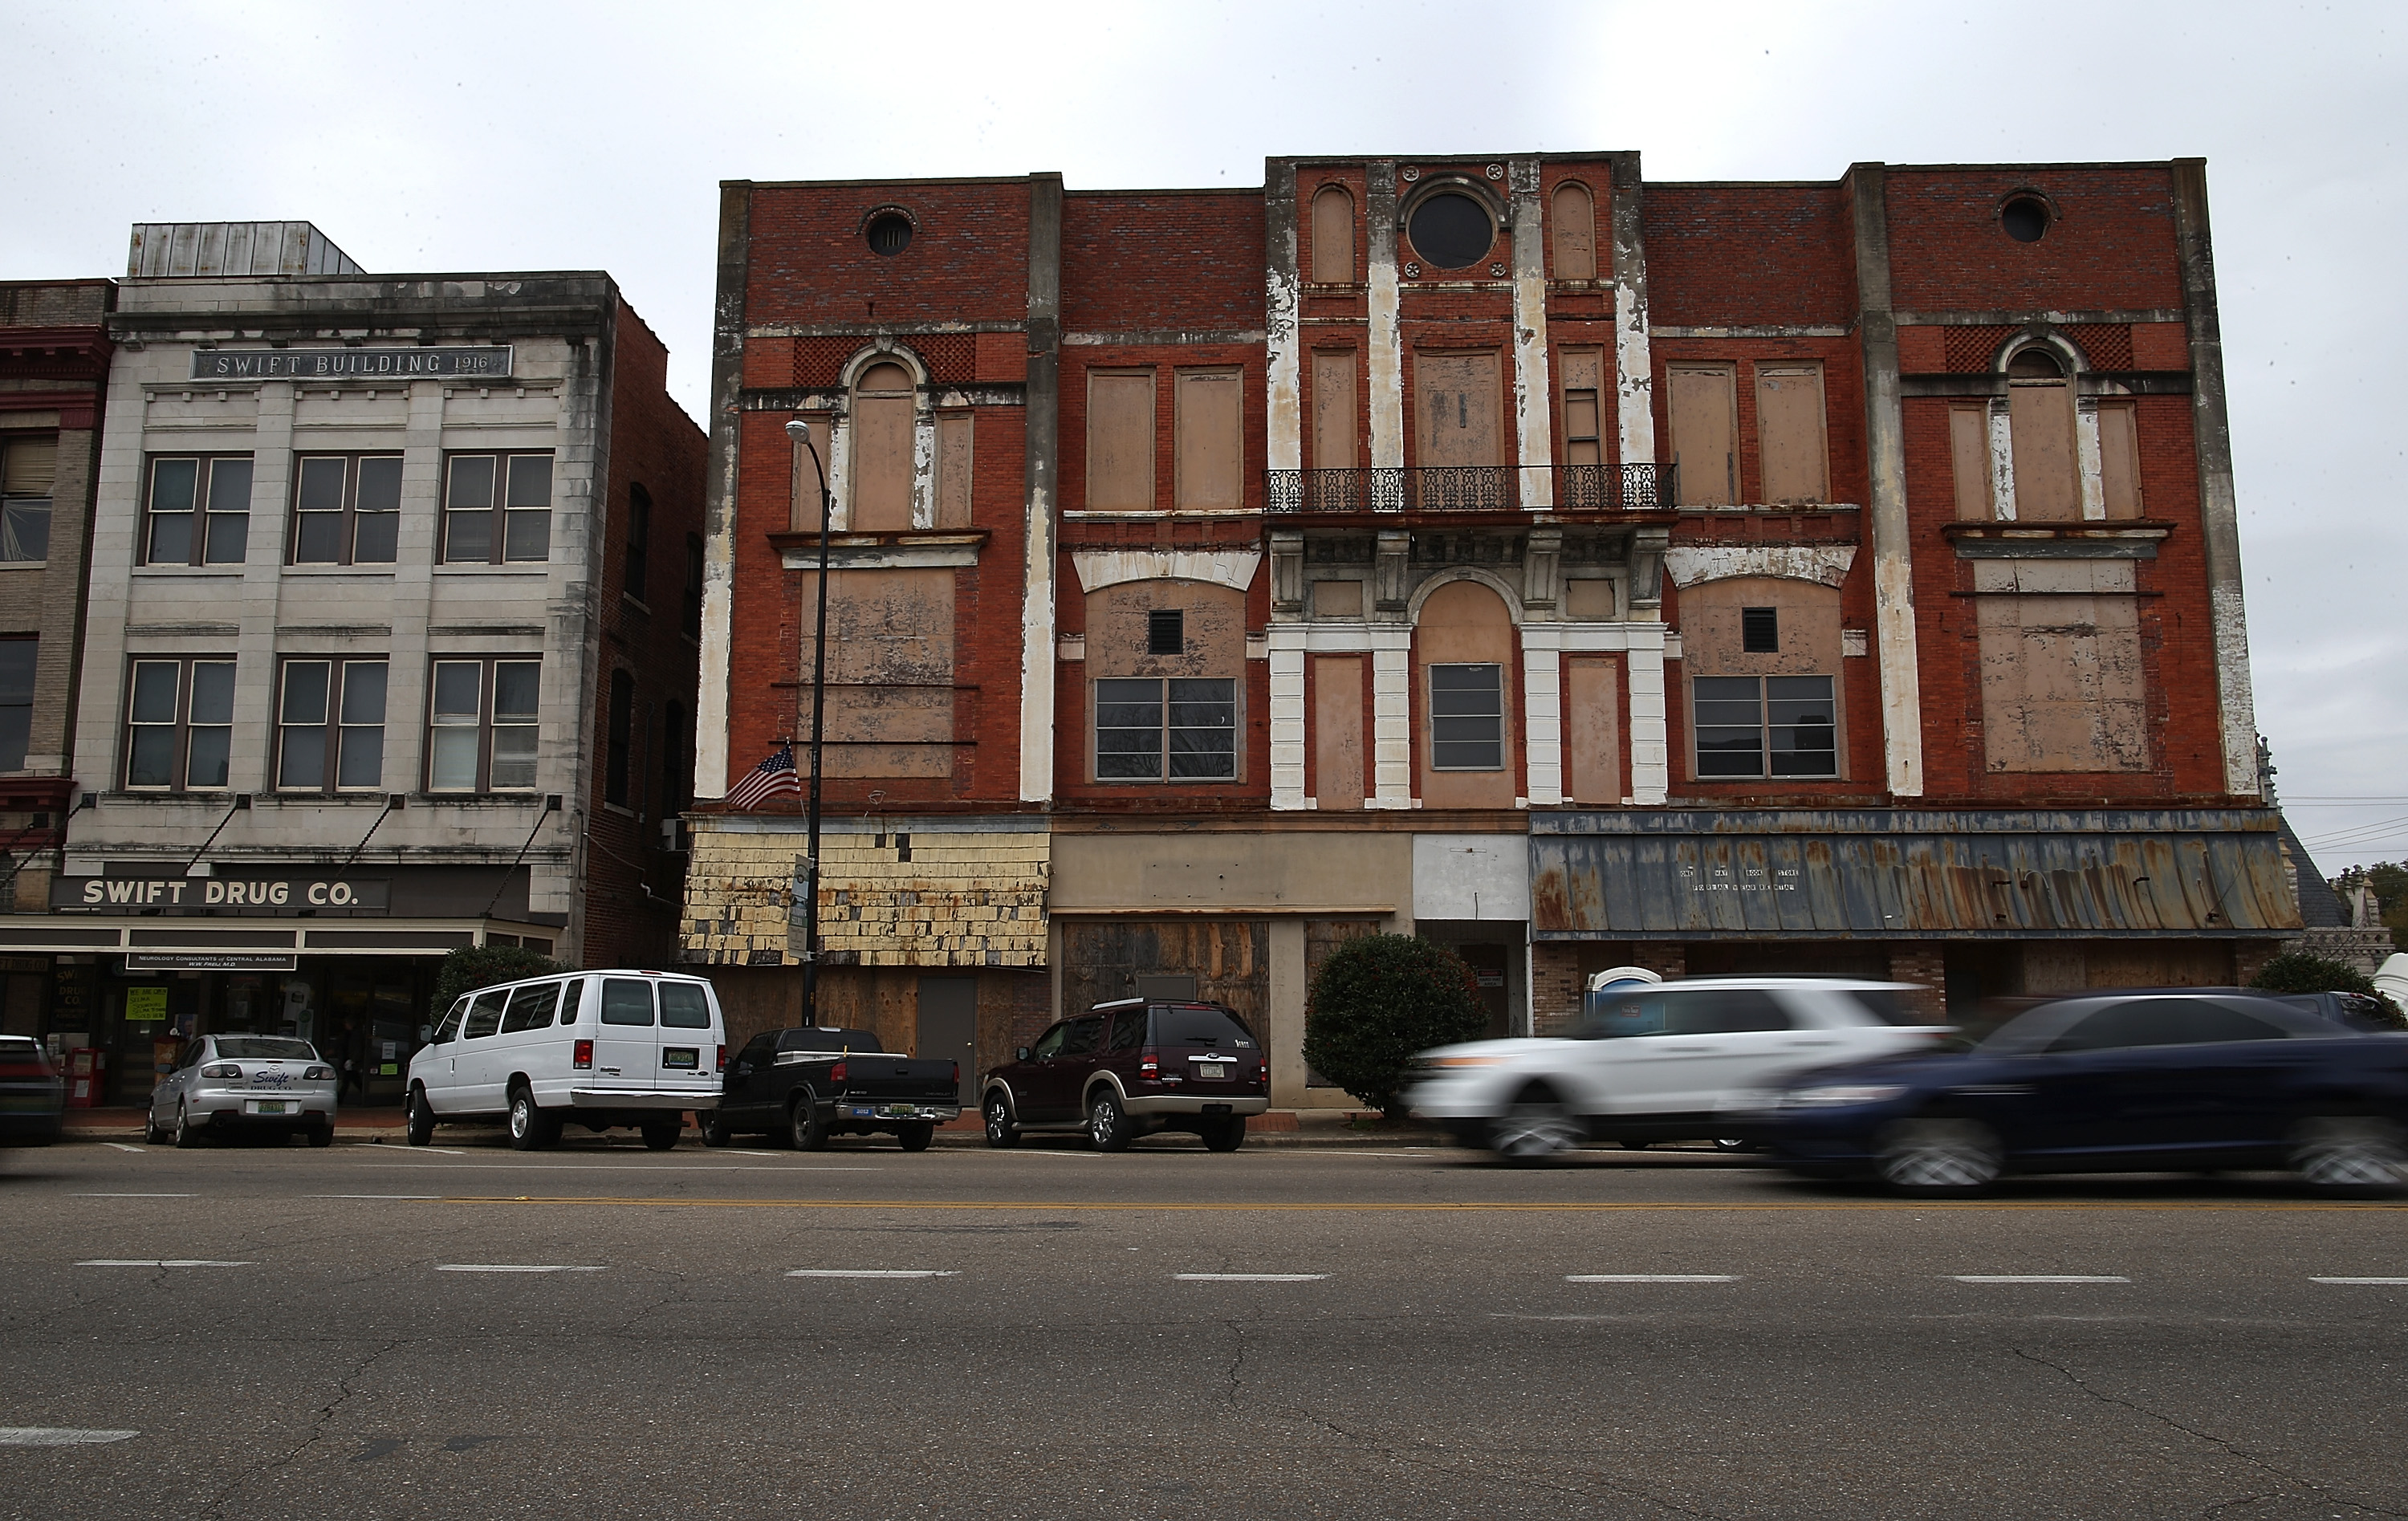 Cars drive by a boarded up building in Selma, Alabama. 50 years after the historic civil rights march from Selma to Montgomery where marchers were beaten by State police officers as they crossed the Edmund Pettus Bridge, Selma struggles economically and is one of the poorest cities in Alabama (Justin Sullivan/Getty Images)